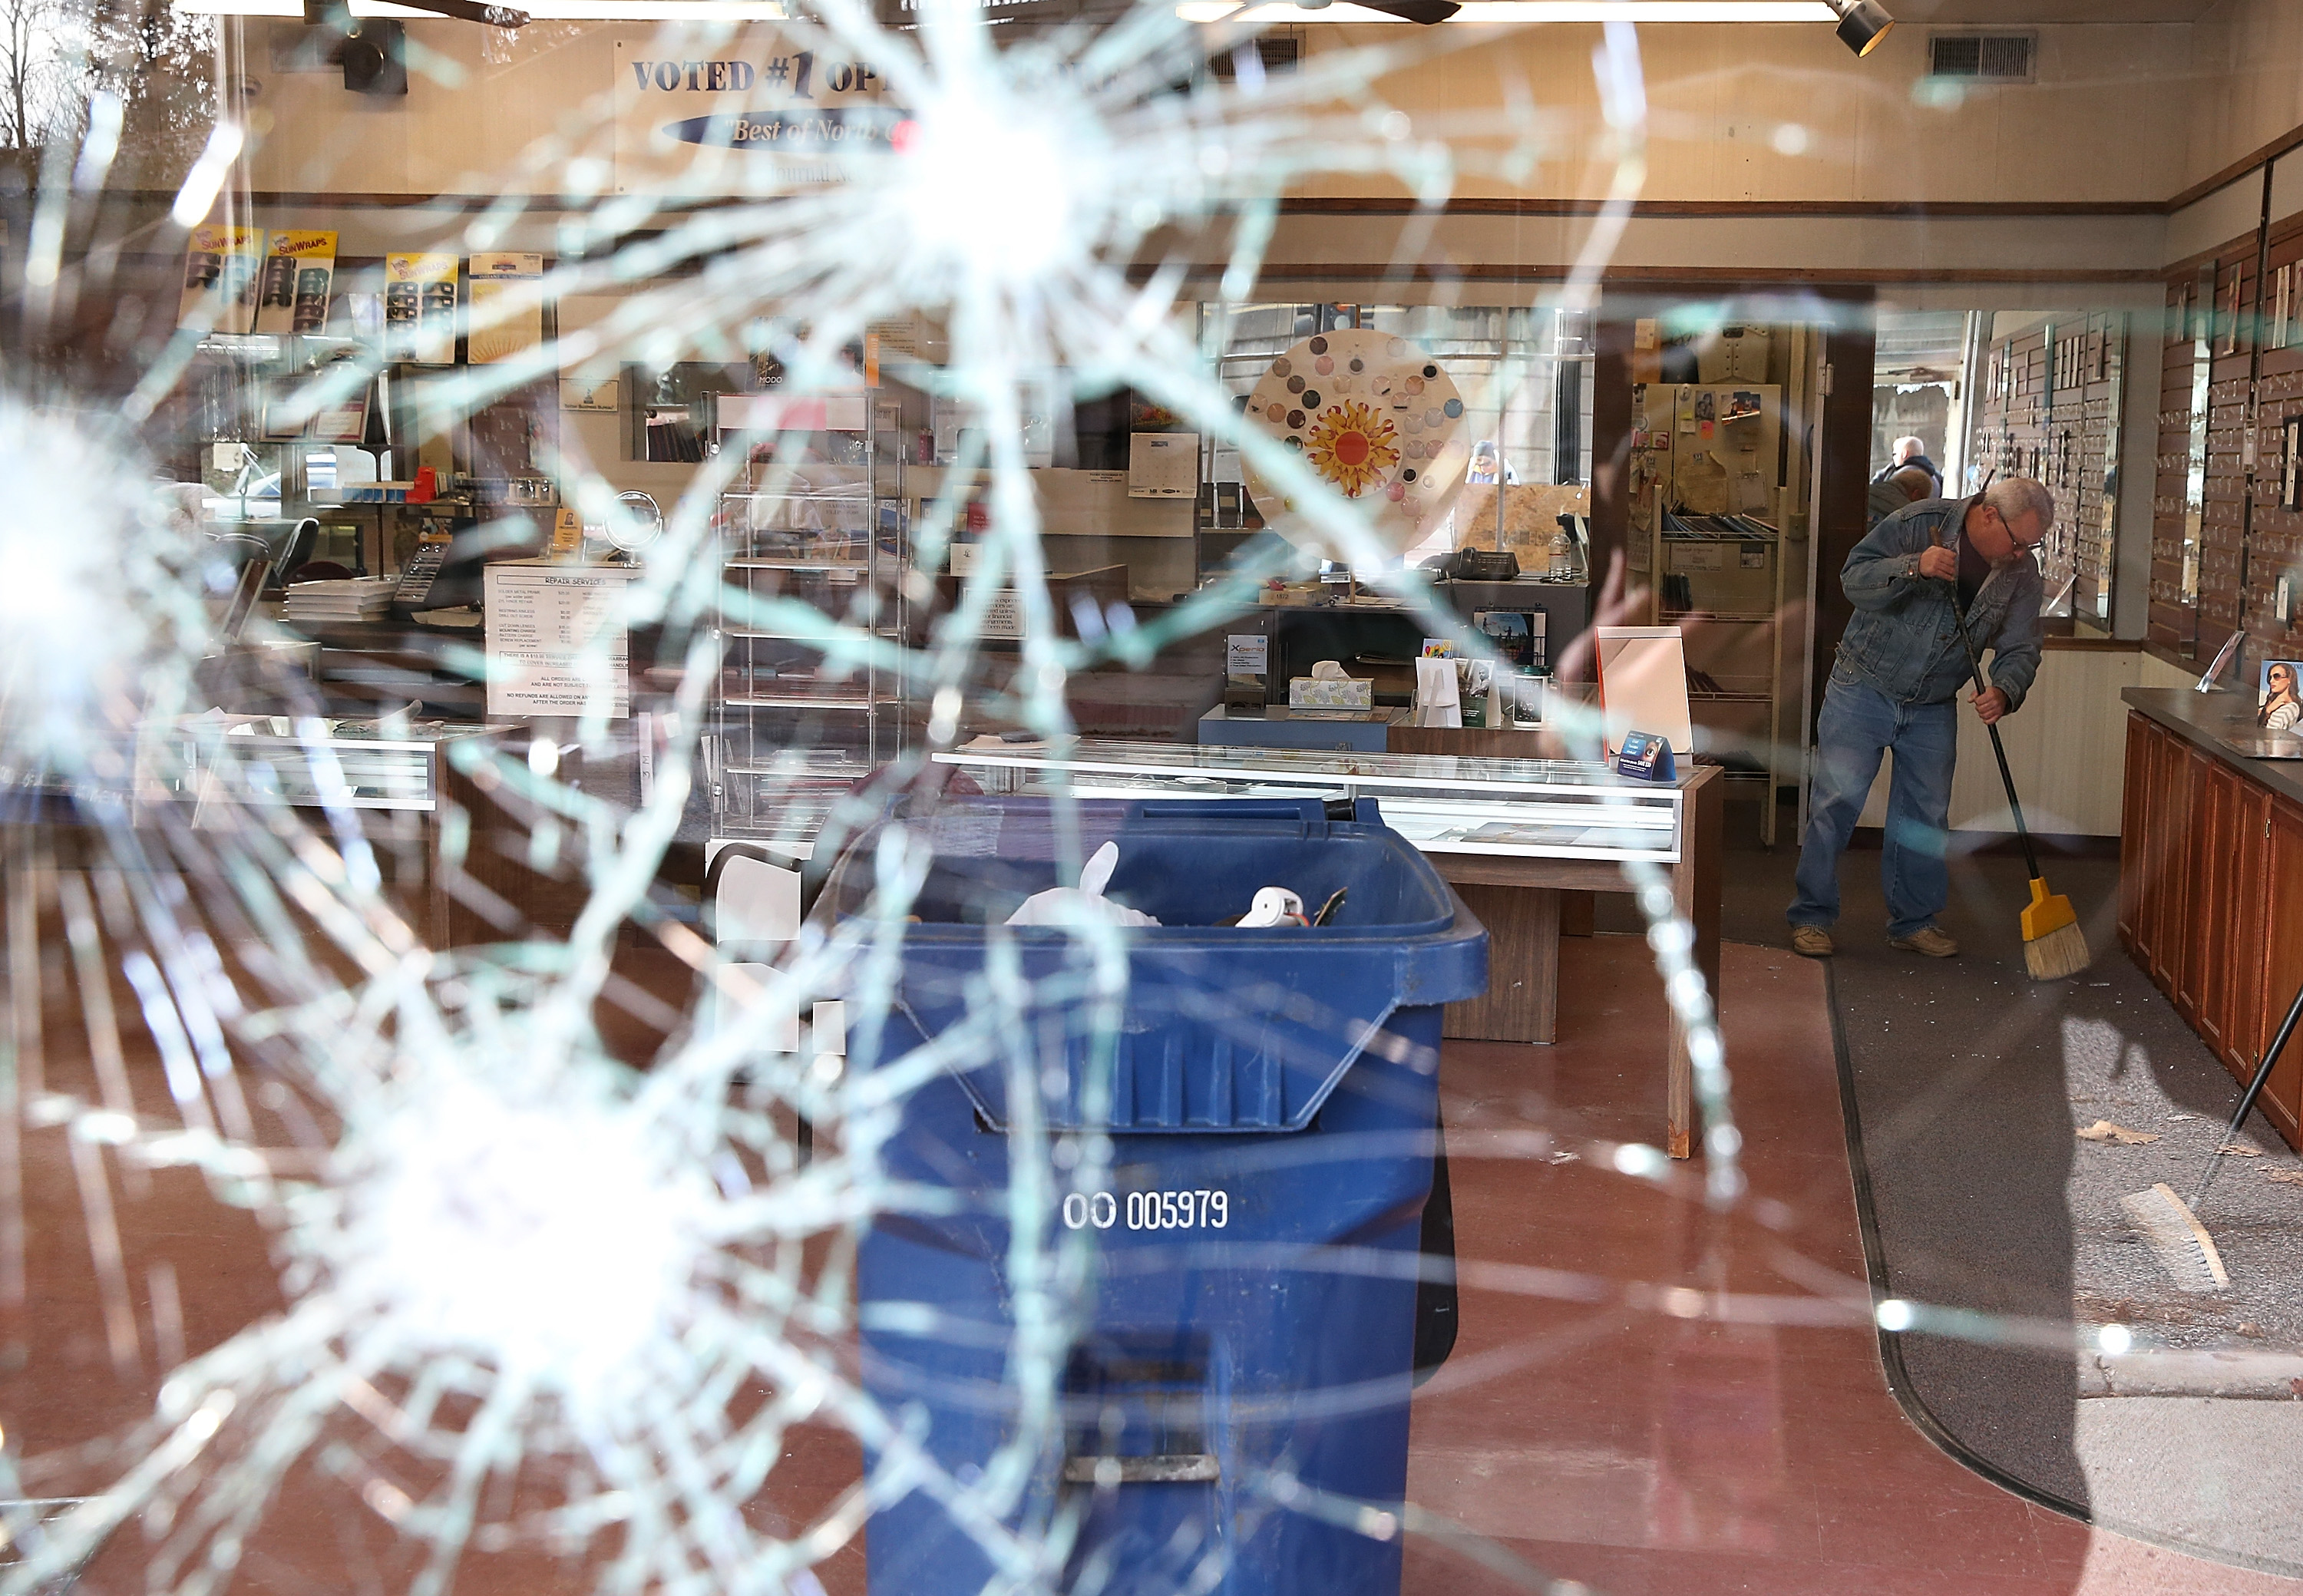 A broken storefront in Ferguson, MO. (Photo: Justin Sullivan/Getty Images)